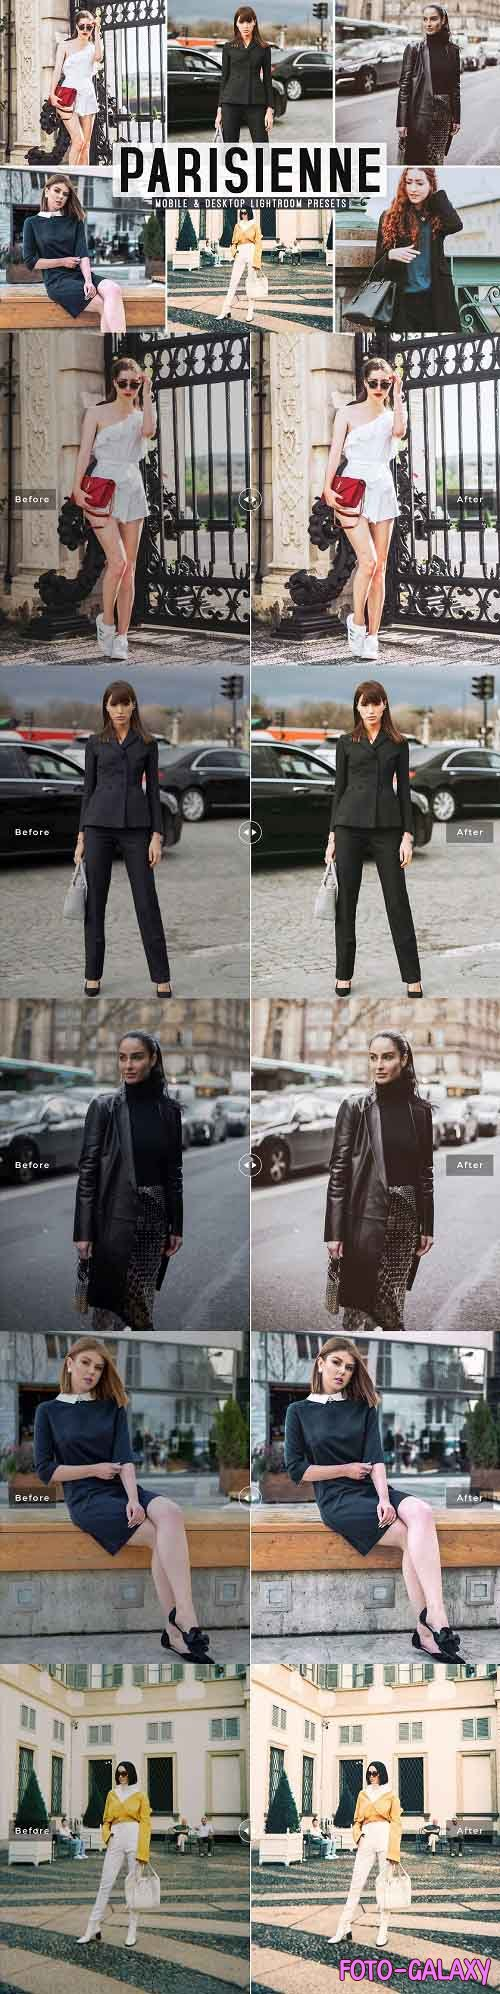 Parisienne Pro Lightroom Presets - 5437116 - Mobile & Desktop